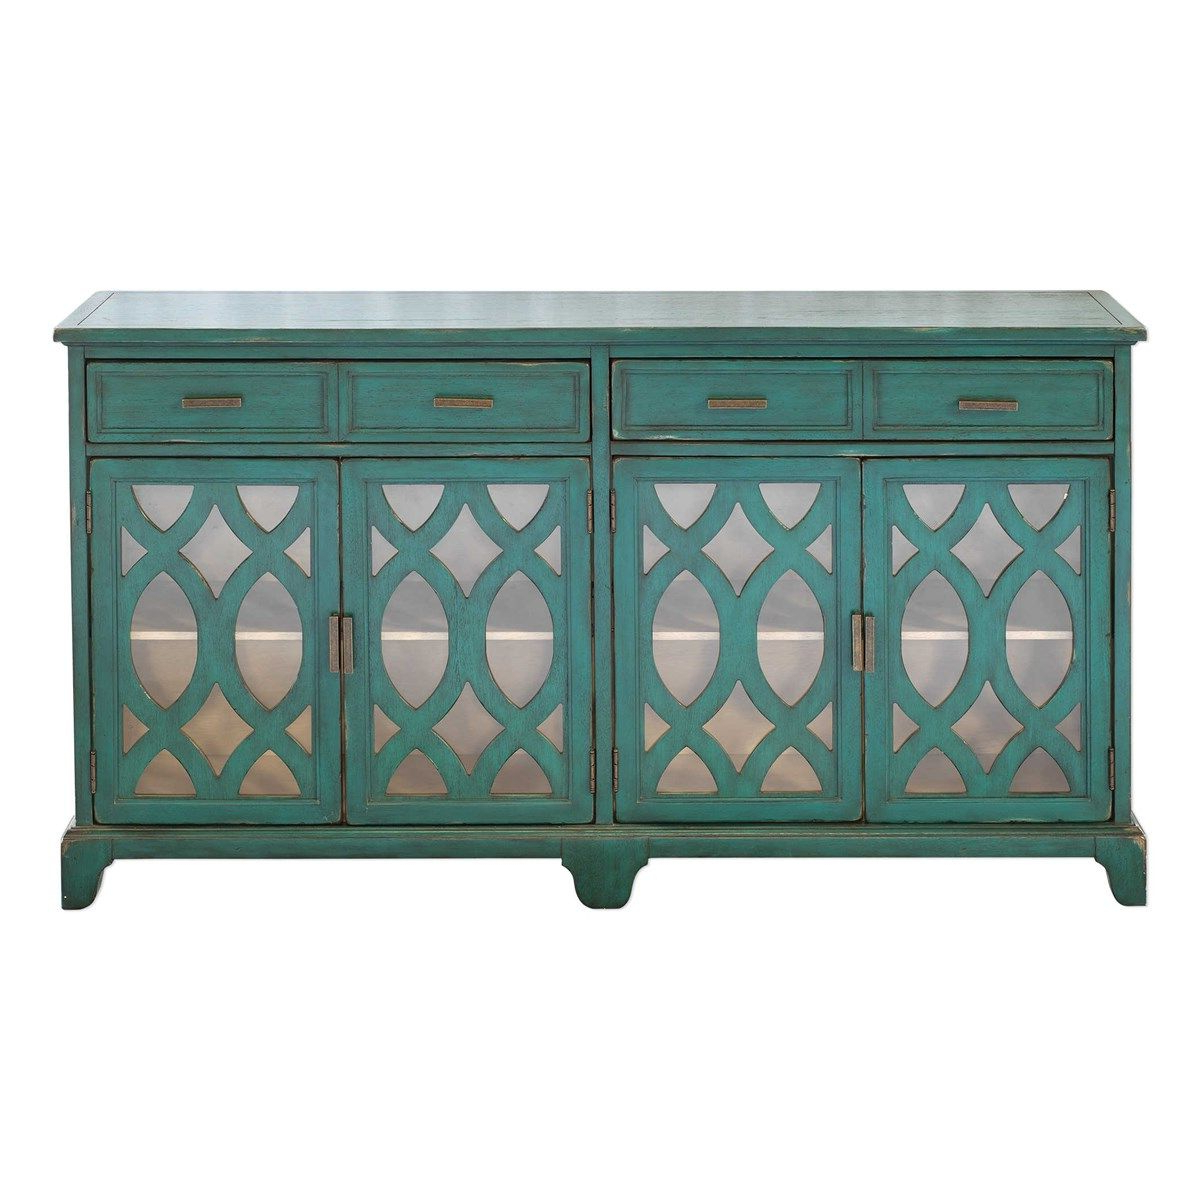 Uttermost Oksana Wooden Credenza | The Lodge At Truitt In Within Kara 4 Door Accent Cabinets (View 12 of 20)